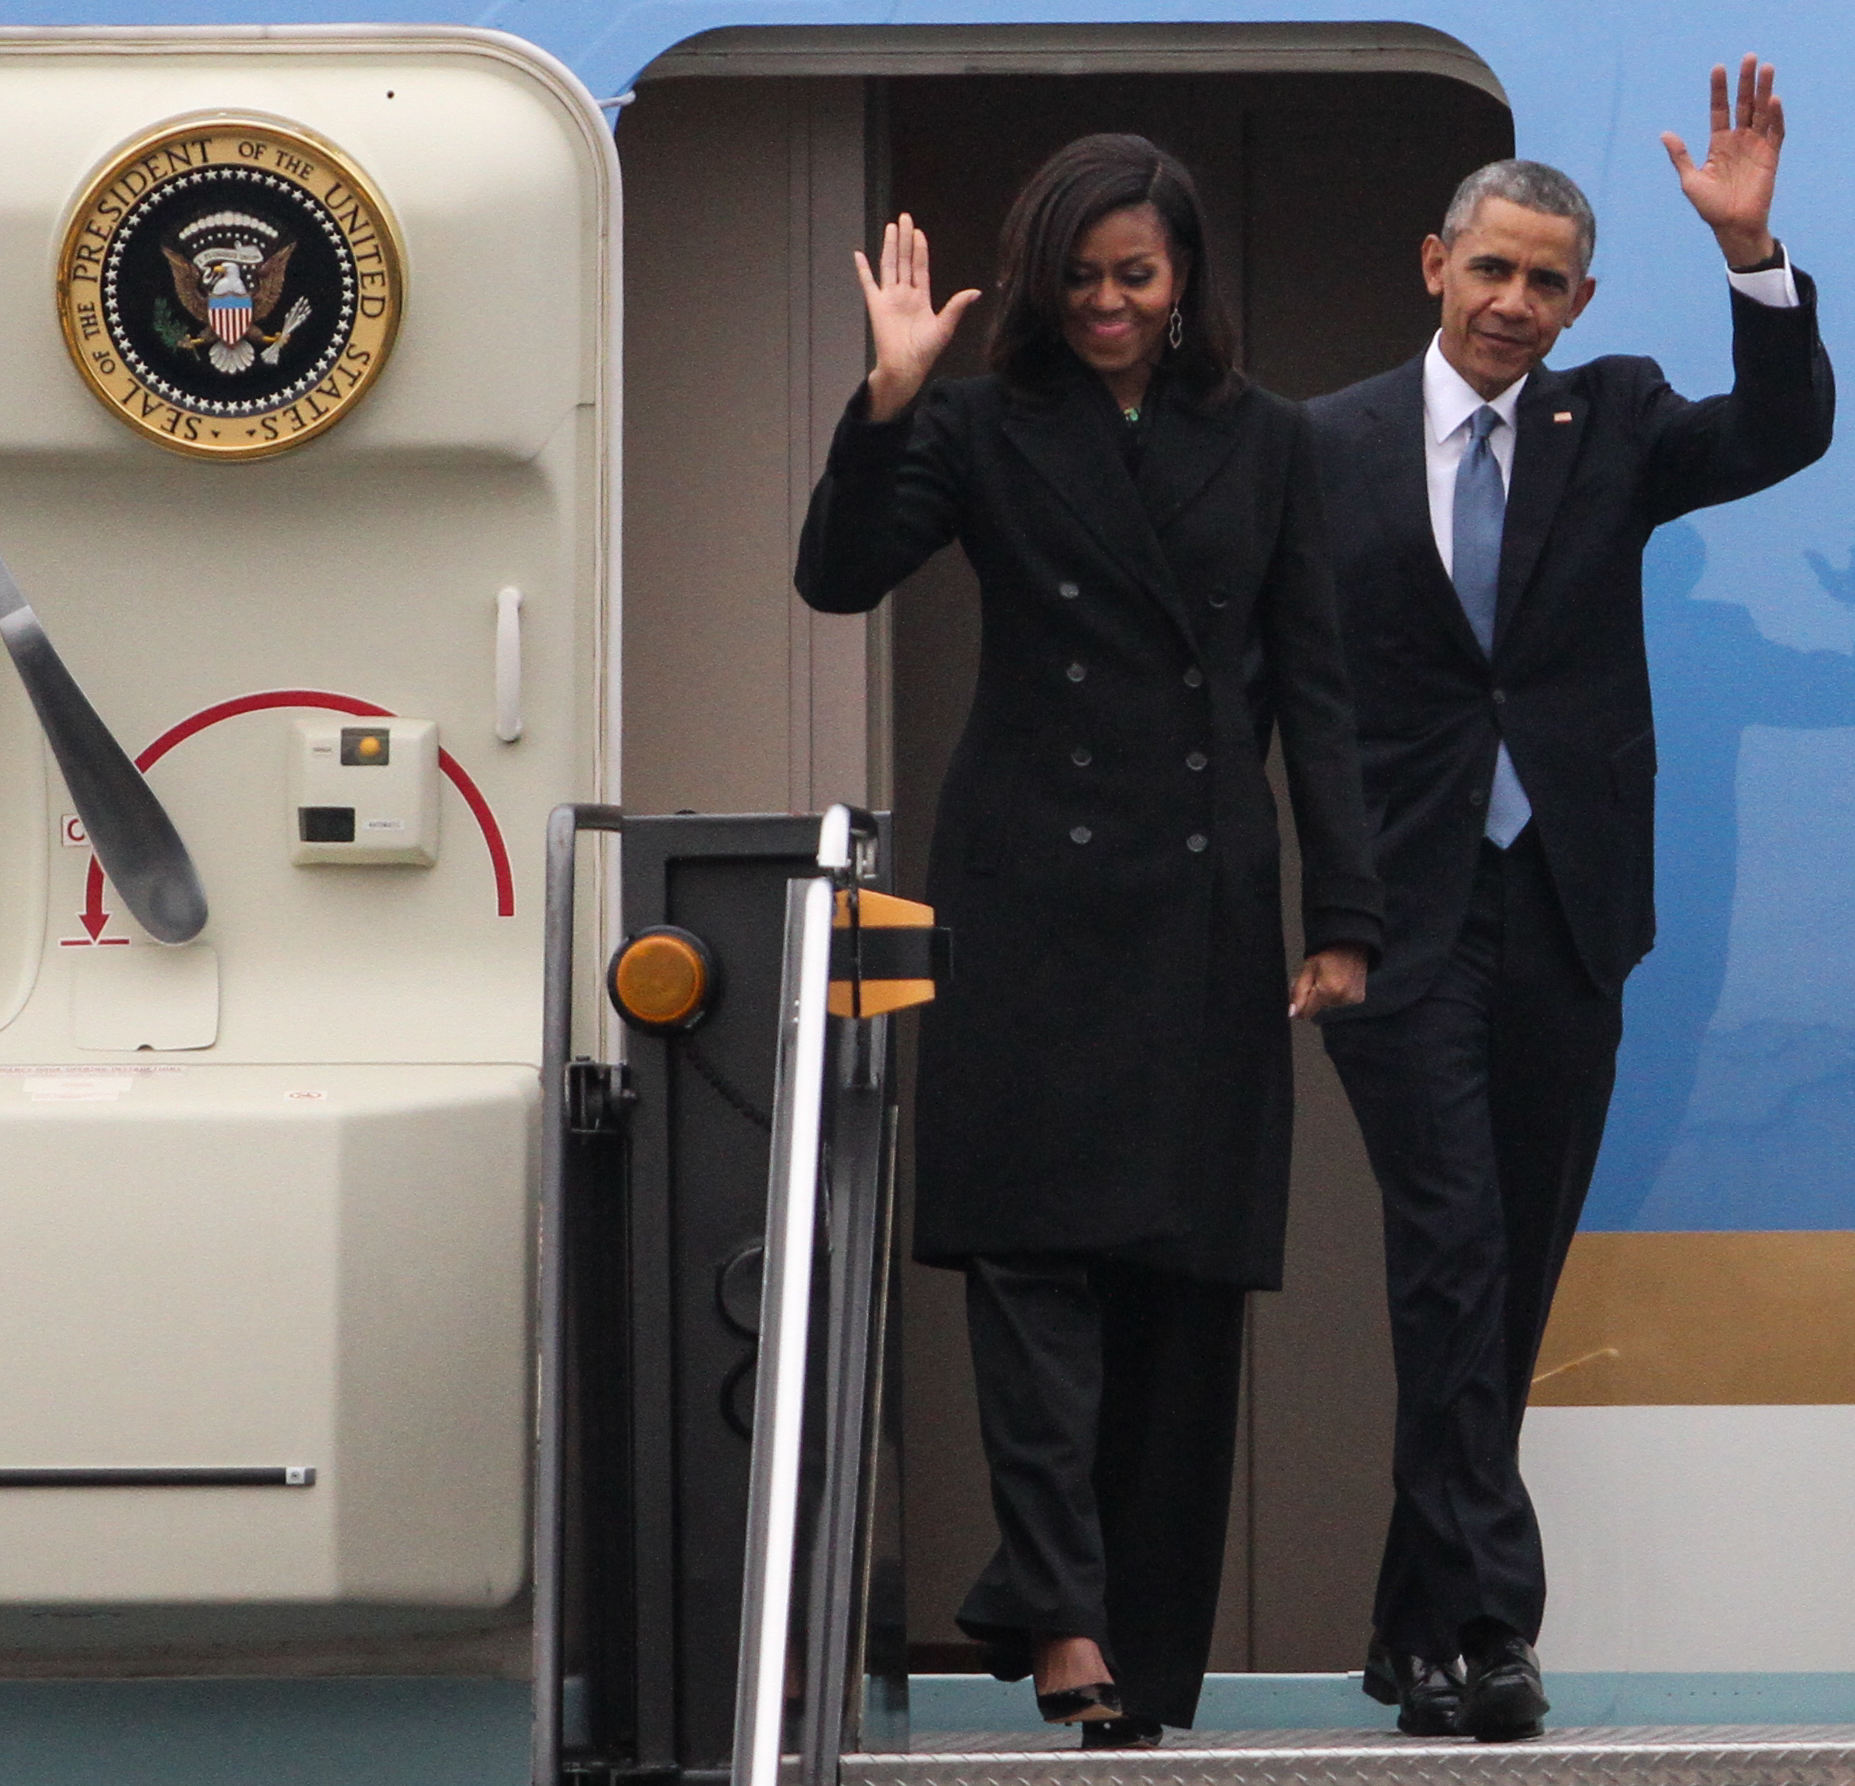 U.S. President Barack Obama (right)and First Lady Michelle Obama wave to the crowd at Logan International Airport in Boston, Mass.March 30, 2015.